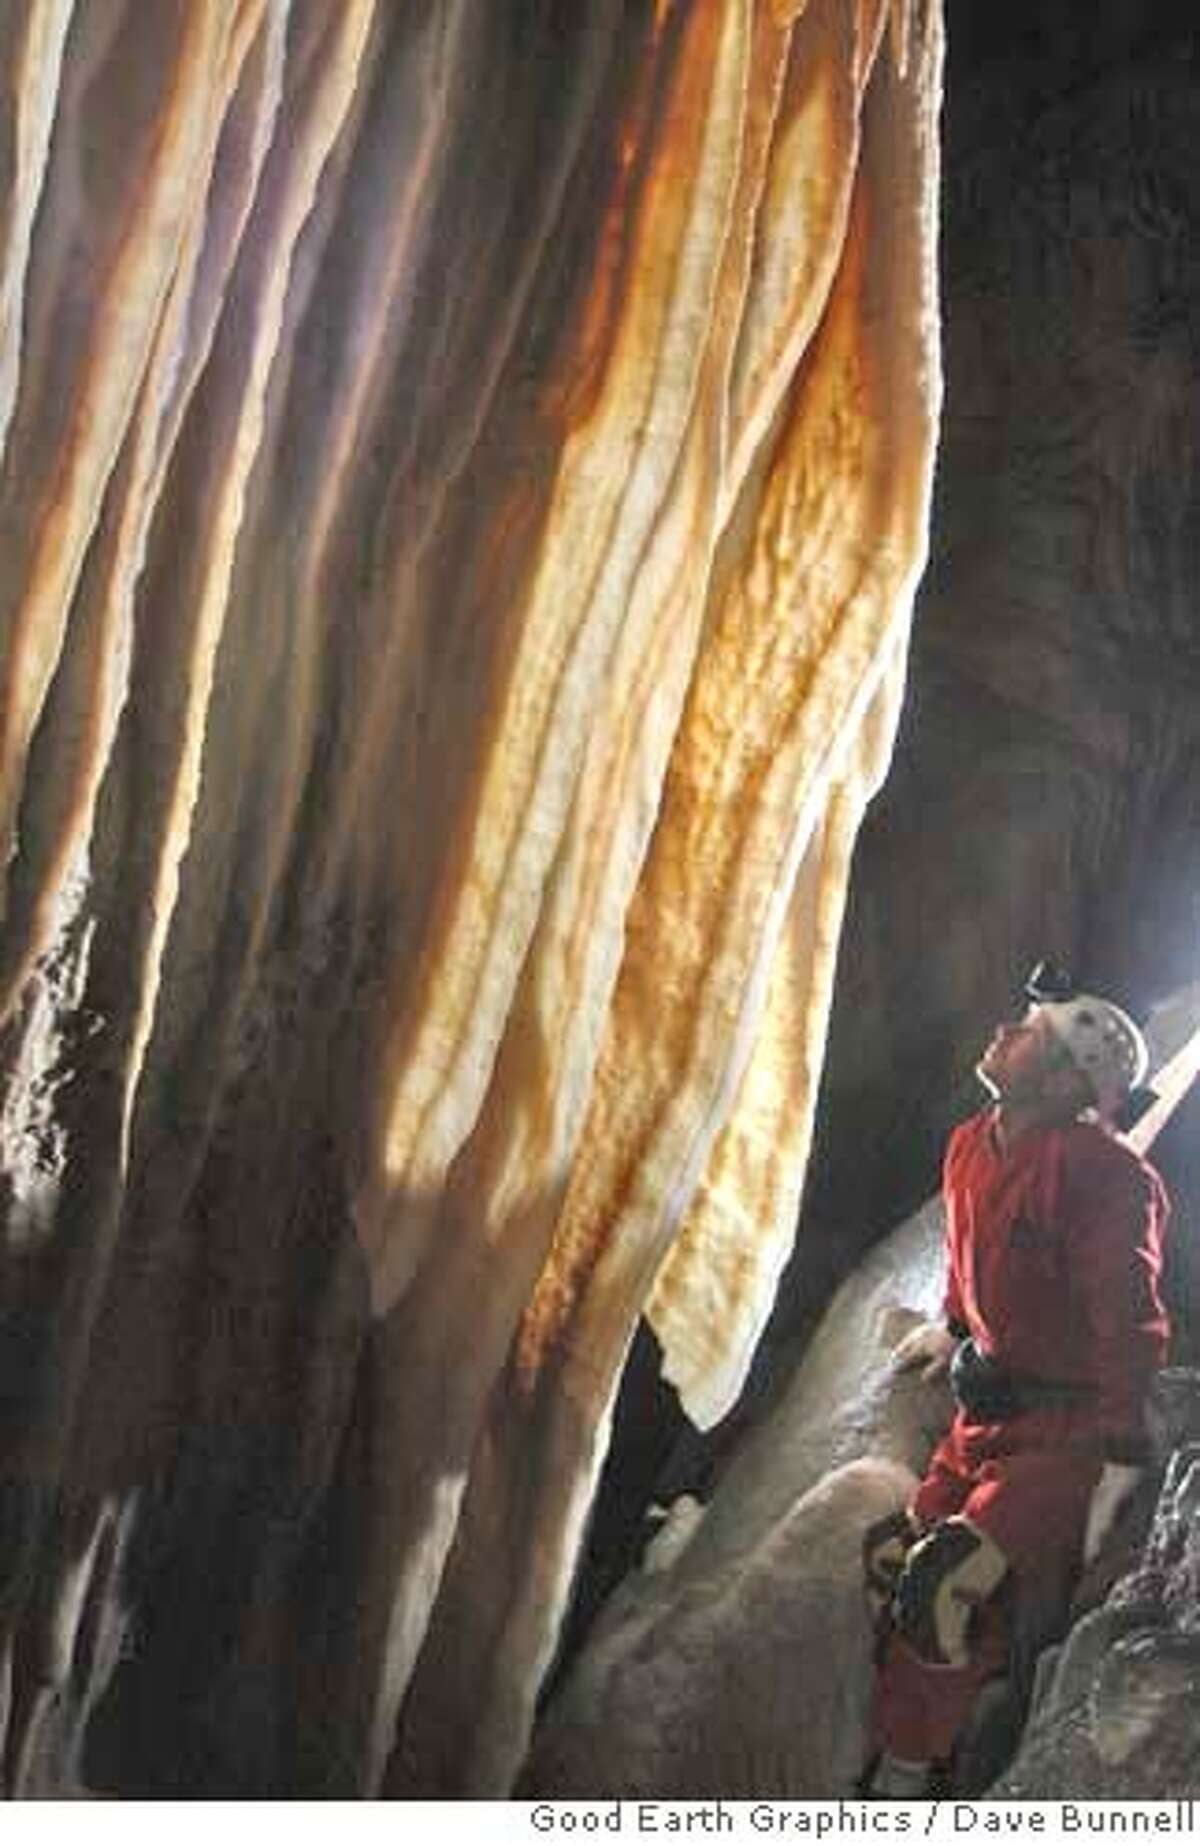 Scott McBride, a cave explorer from San Andreas, examines a cave curtain deep within Ursa Minor, the cave he discovered at Sequoia and Kings Canyon National Parks. The cave extends more than 1,000 feet and features five rooms and several passages. PHOTO BY DAVE BUNNELL, GOOD EARTH GRAPHICS